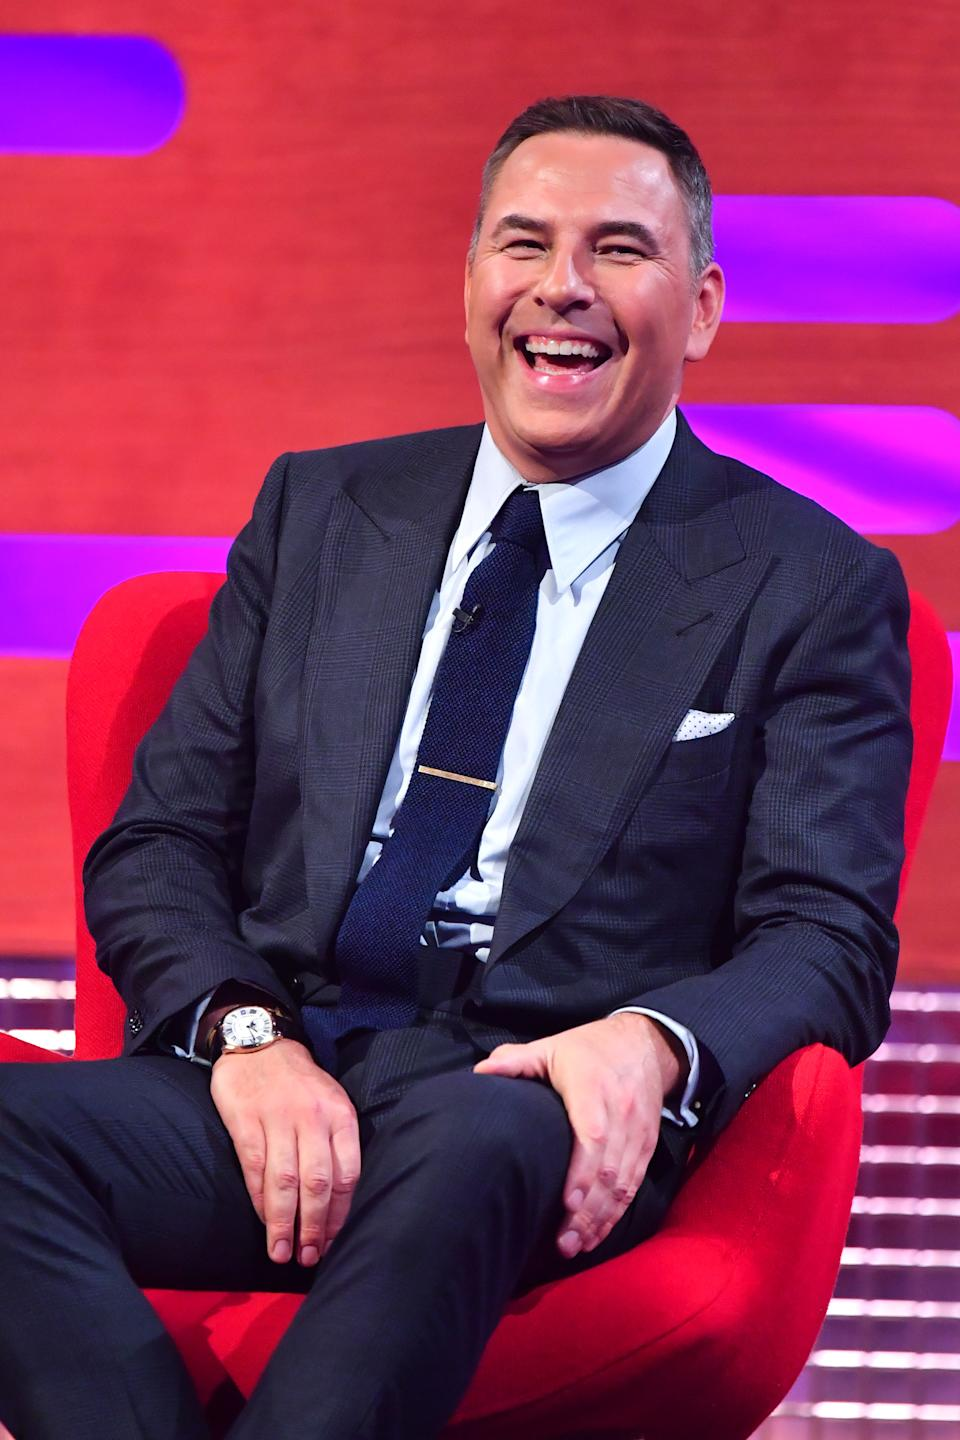 David Walliams during the filming for the Graham Norton Show at BBC Studioworks 6 Television Centre, Wood Lane, London, to be aired on BBC One on Friday evening.